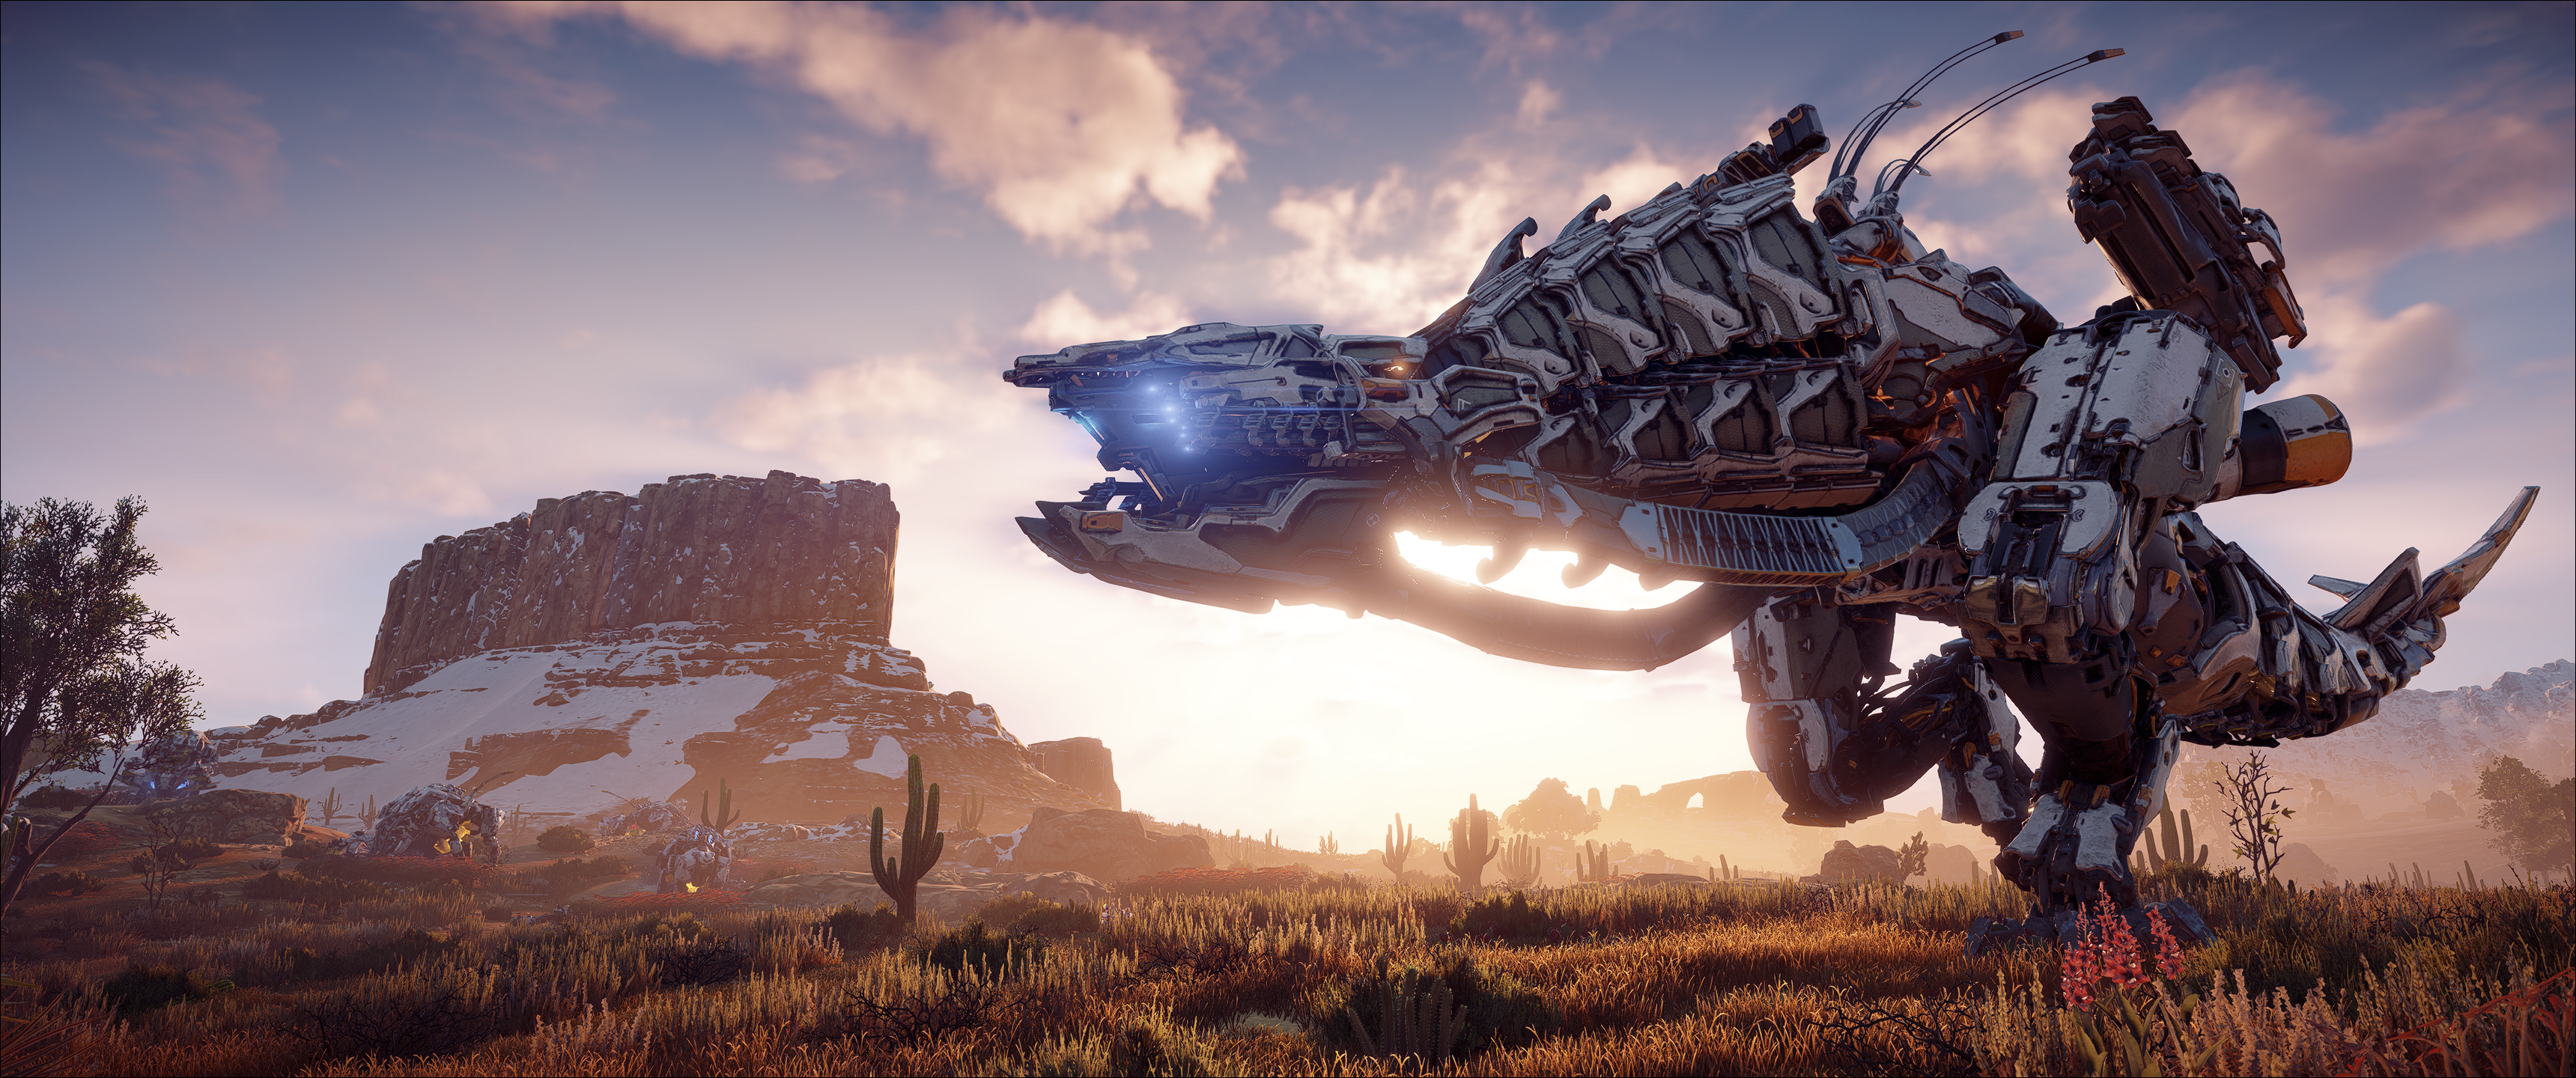 horizon zero dawn screenshot 2